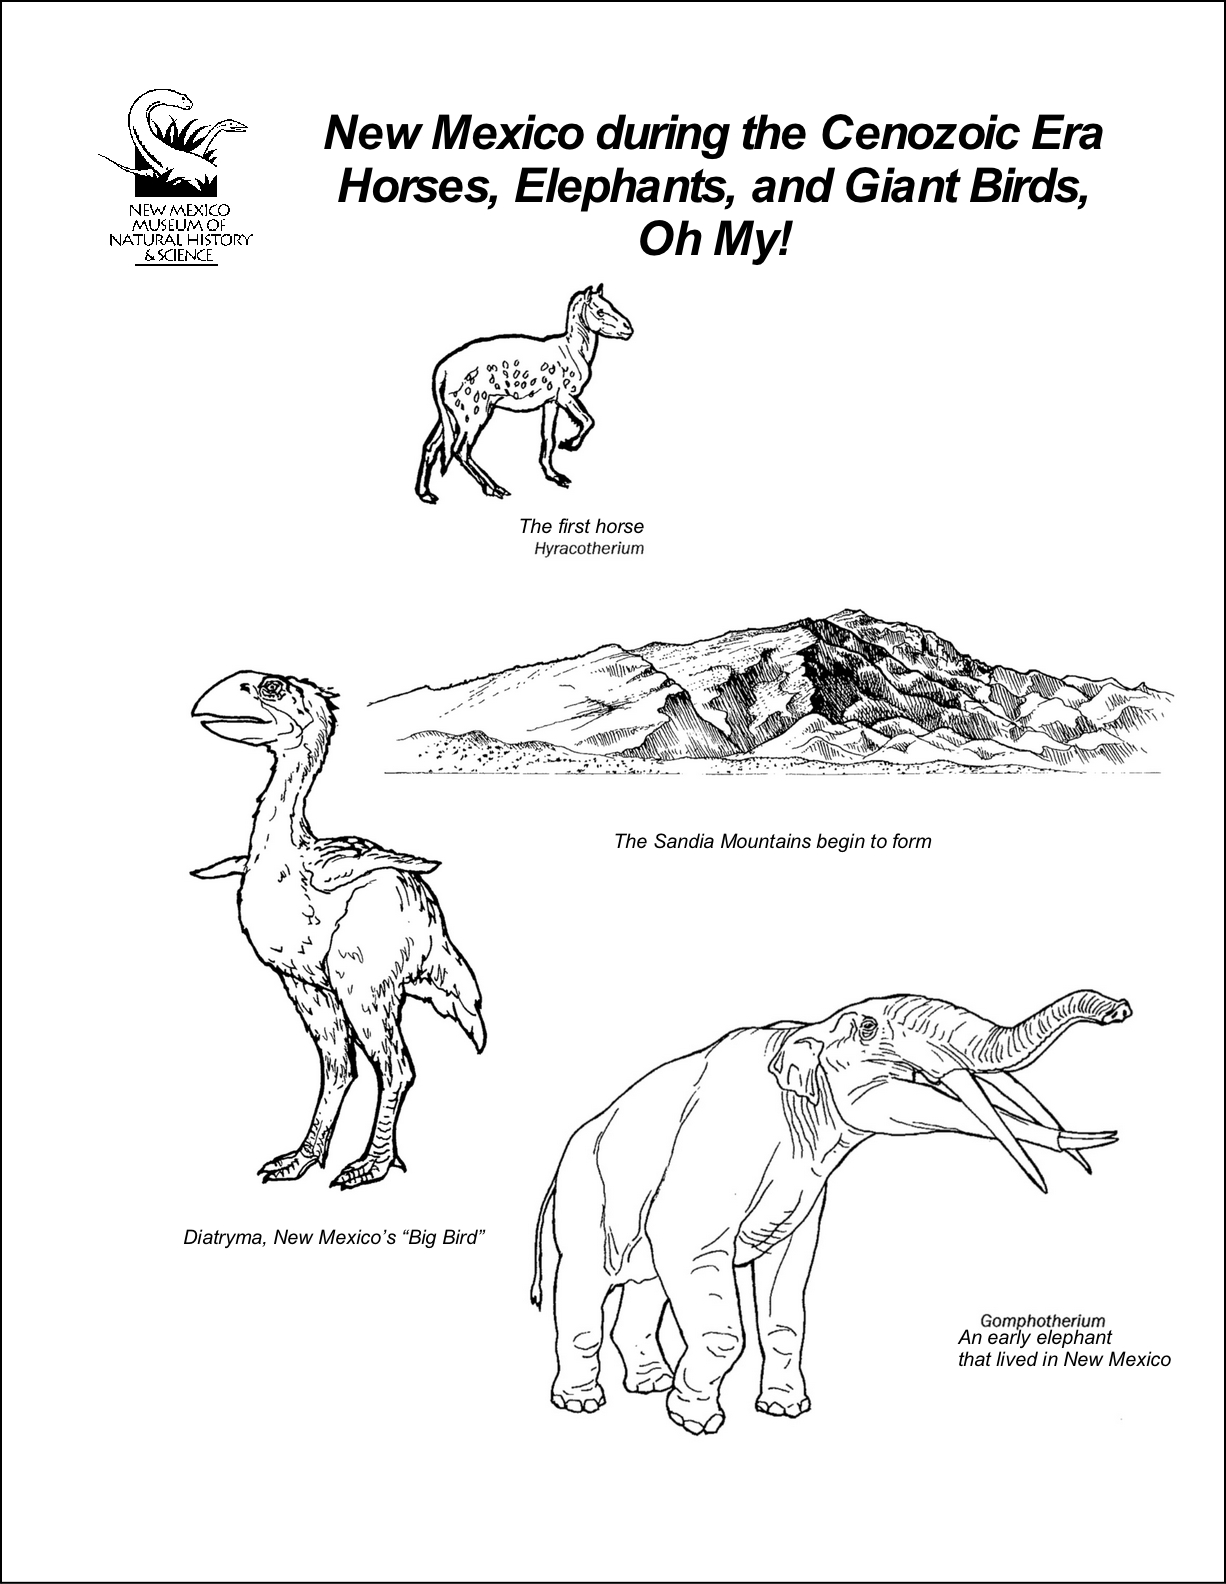 Cenezoic Era Coloring Sheet- Horses, Elephants, and Giant Birds